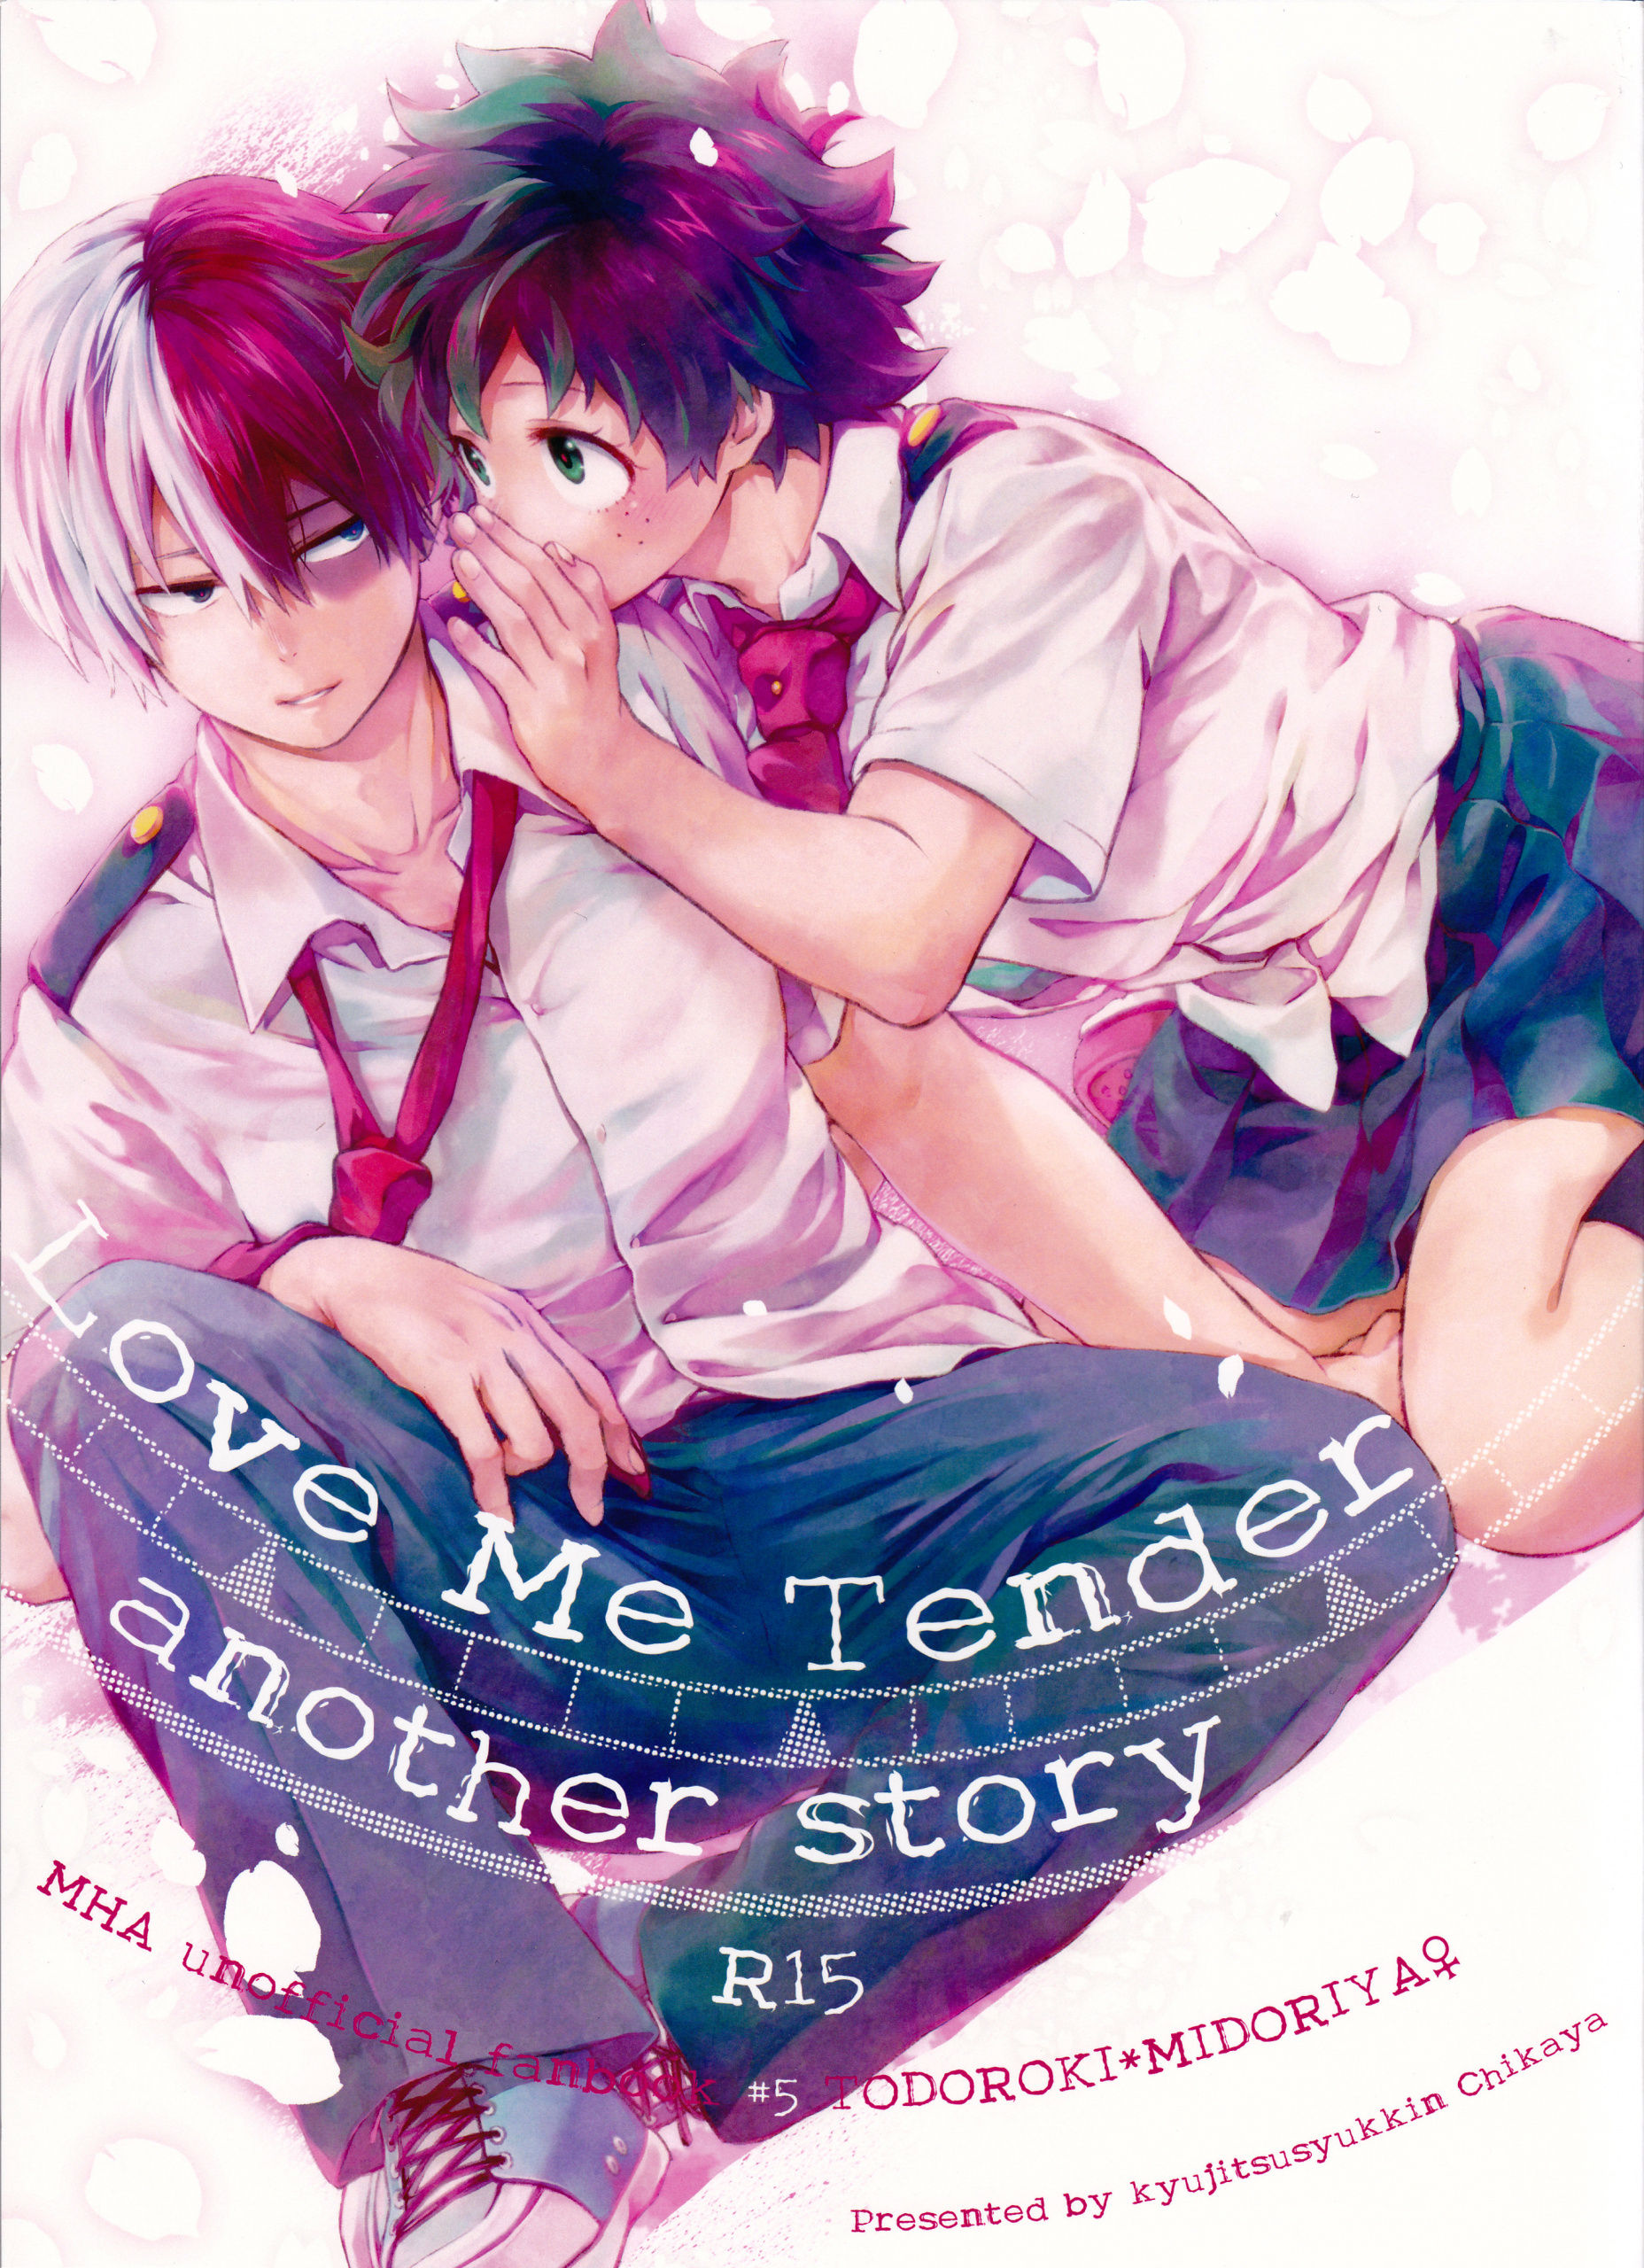 Love me tender another story hentai manga picture 1